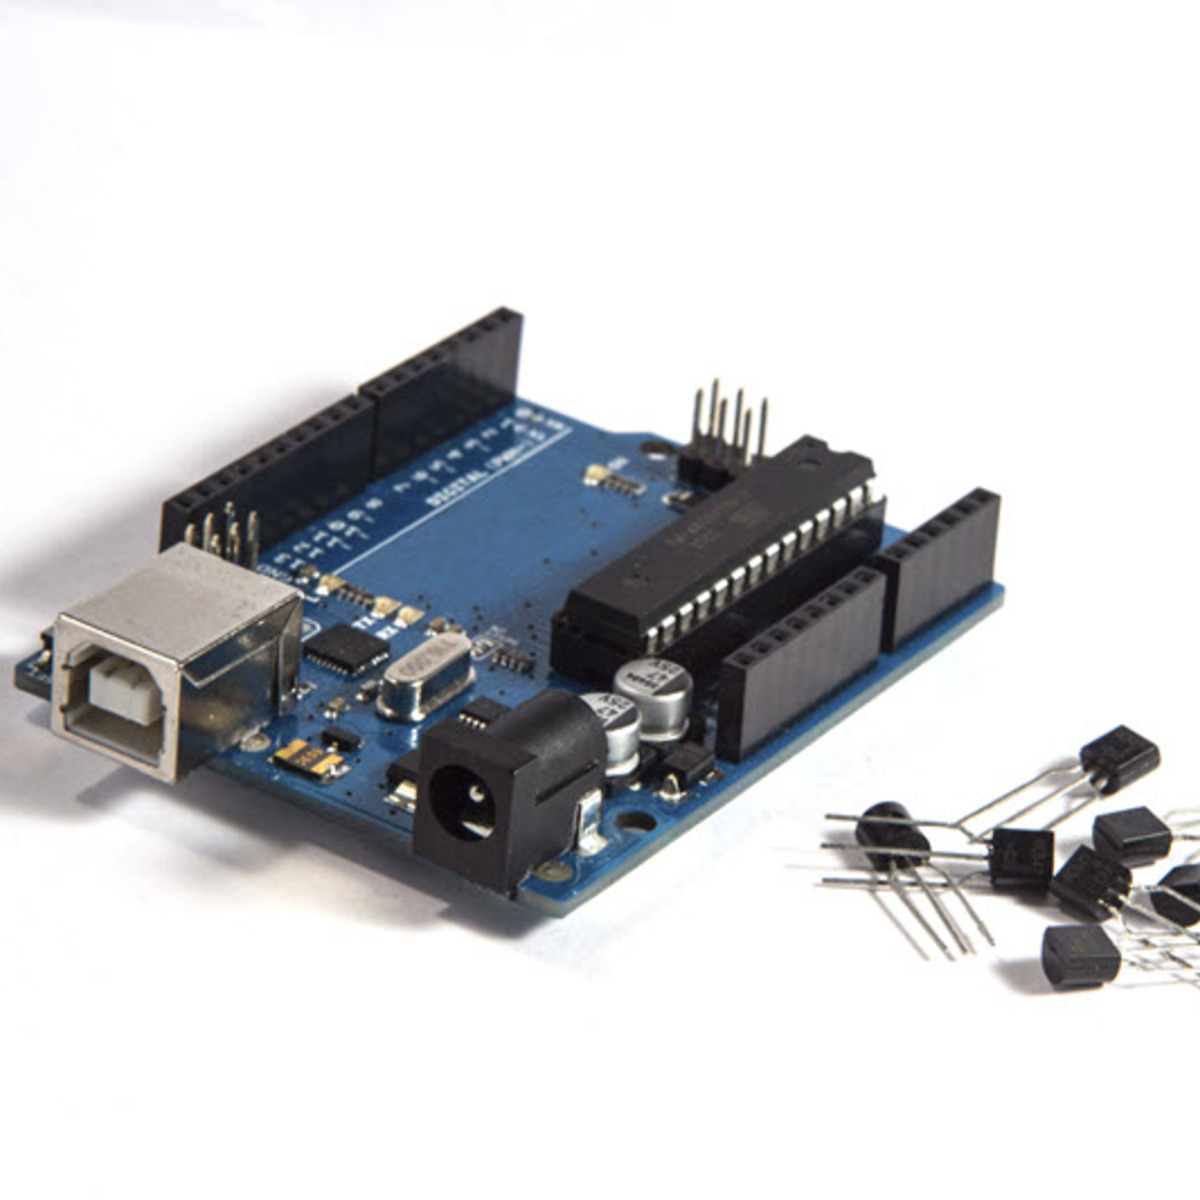 Interfacing with the Arduino course image